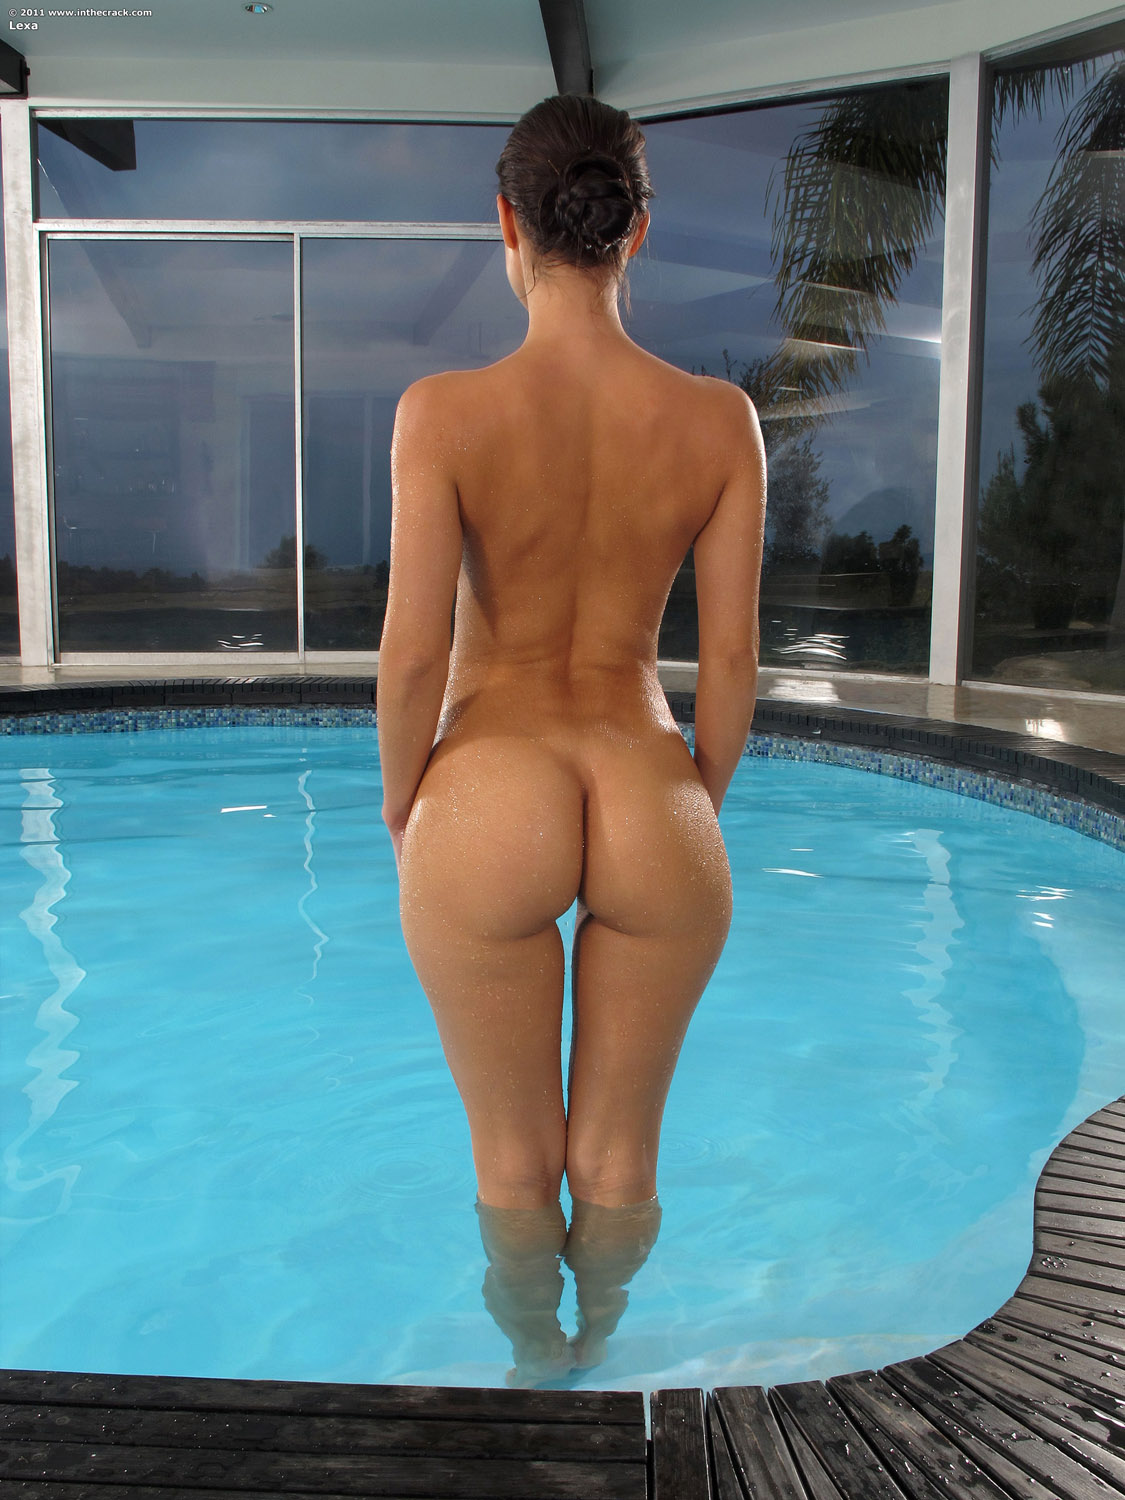 Bubble butt ass dude naked show his sexy body